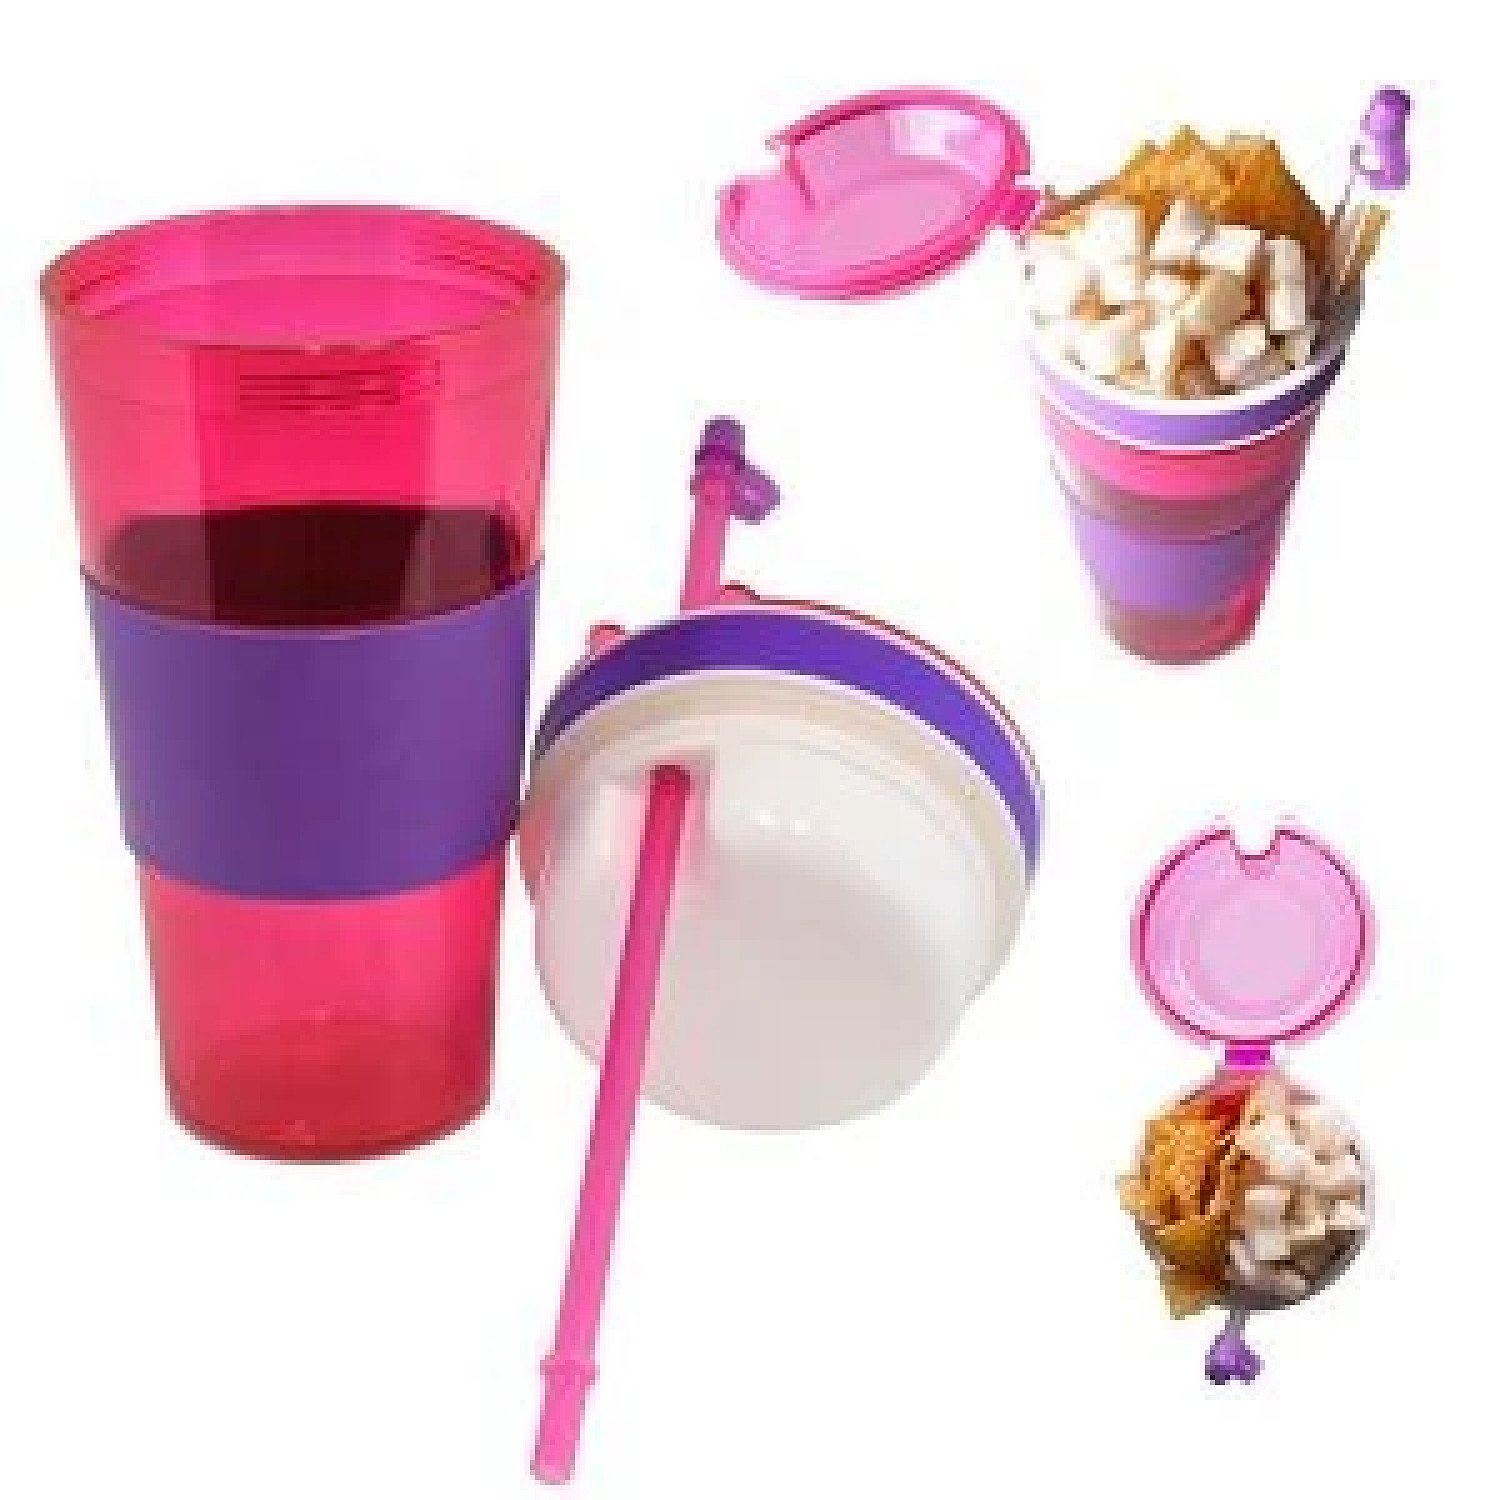 (1.3) Kool Kup - Drink and Snack in One Cup Free Postage